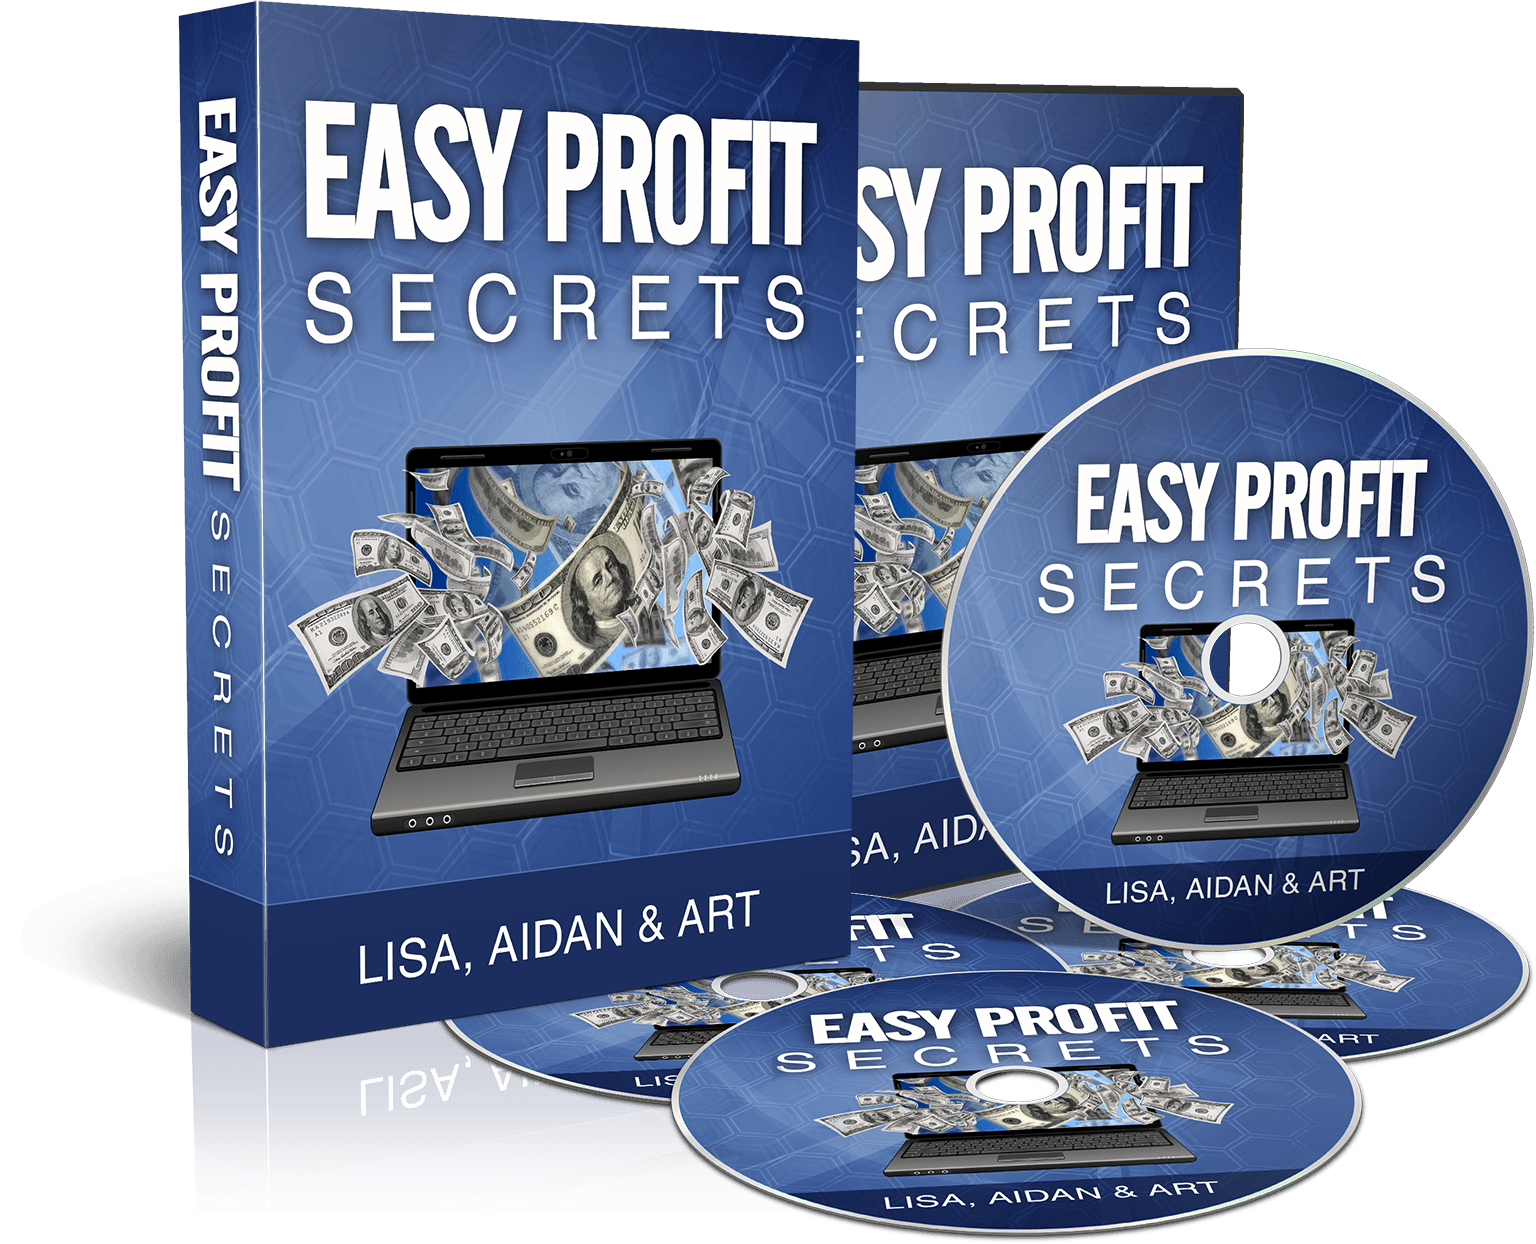 How To Arbitrage Products You Don't Own with A Rare 'Flipping' Tactic - Fast and Easy 10